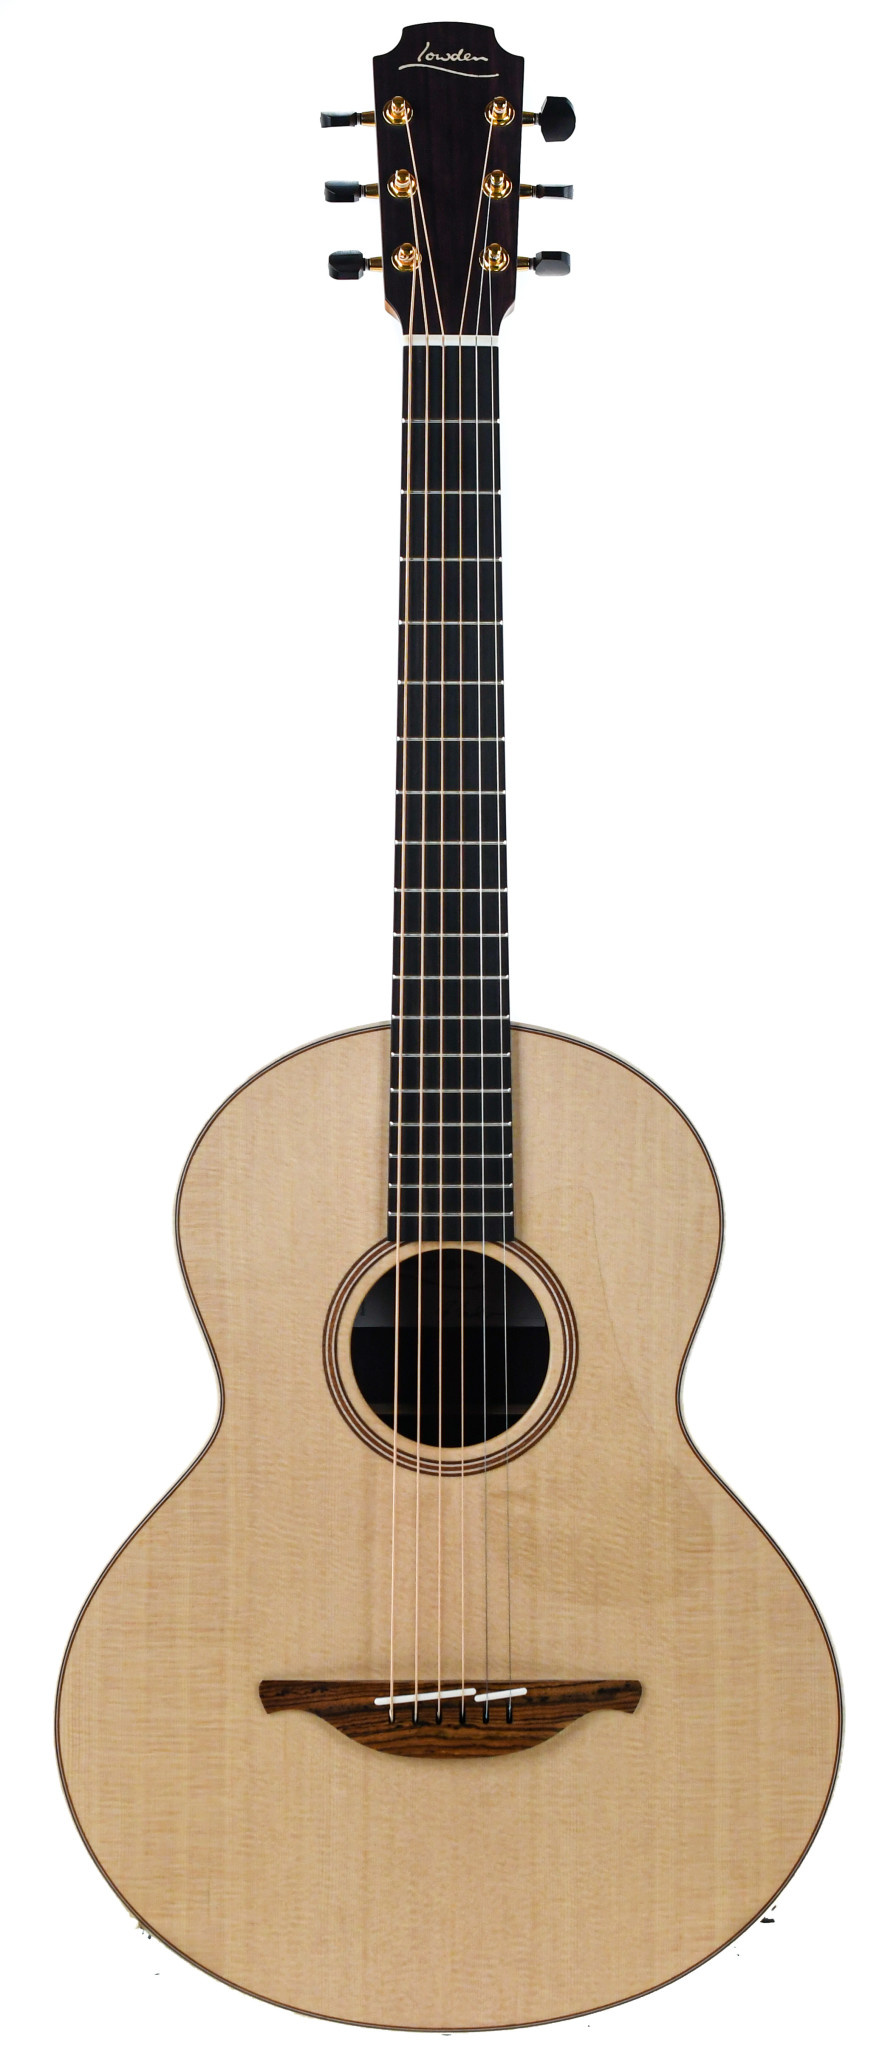 Lowden S32 12 Fret Indian Rosewood Sitka Spruce